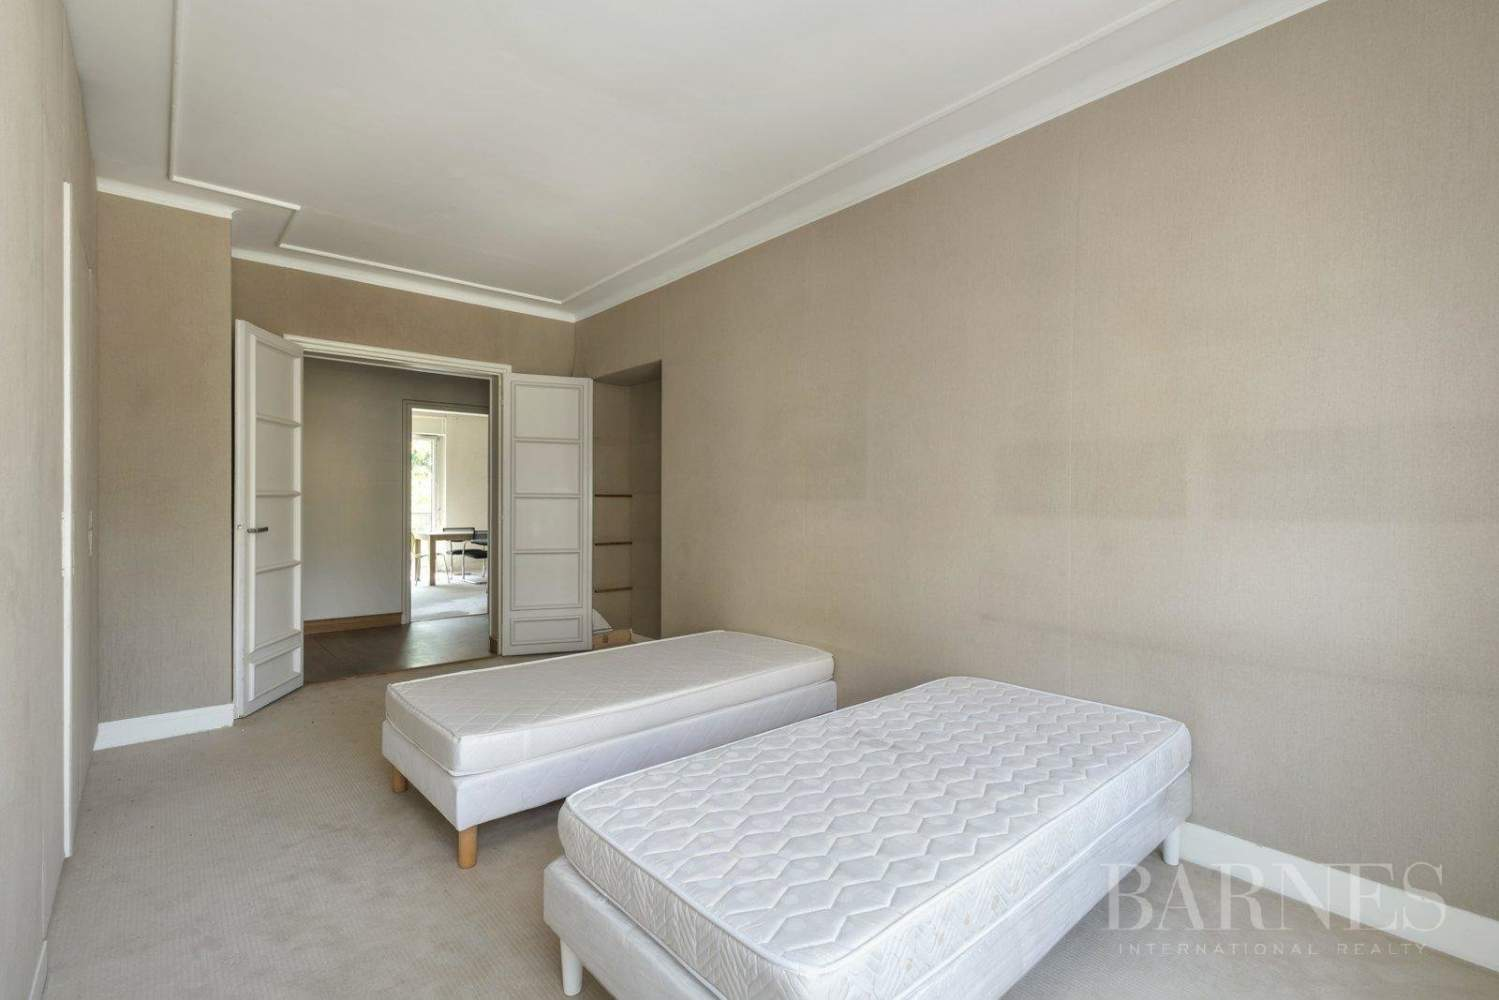 3-BEDROOM APARTMENT - CLEAR VIEWS - BALCONIES - NEUILLY / CHÂTEAU - NORTIER picture 9